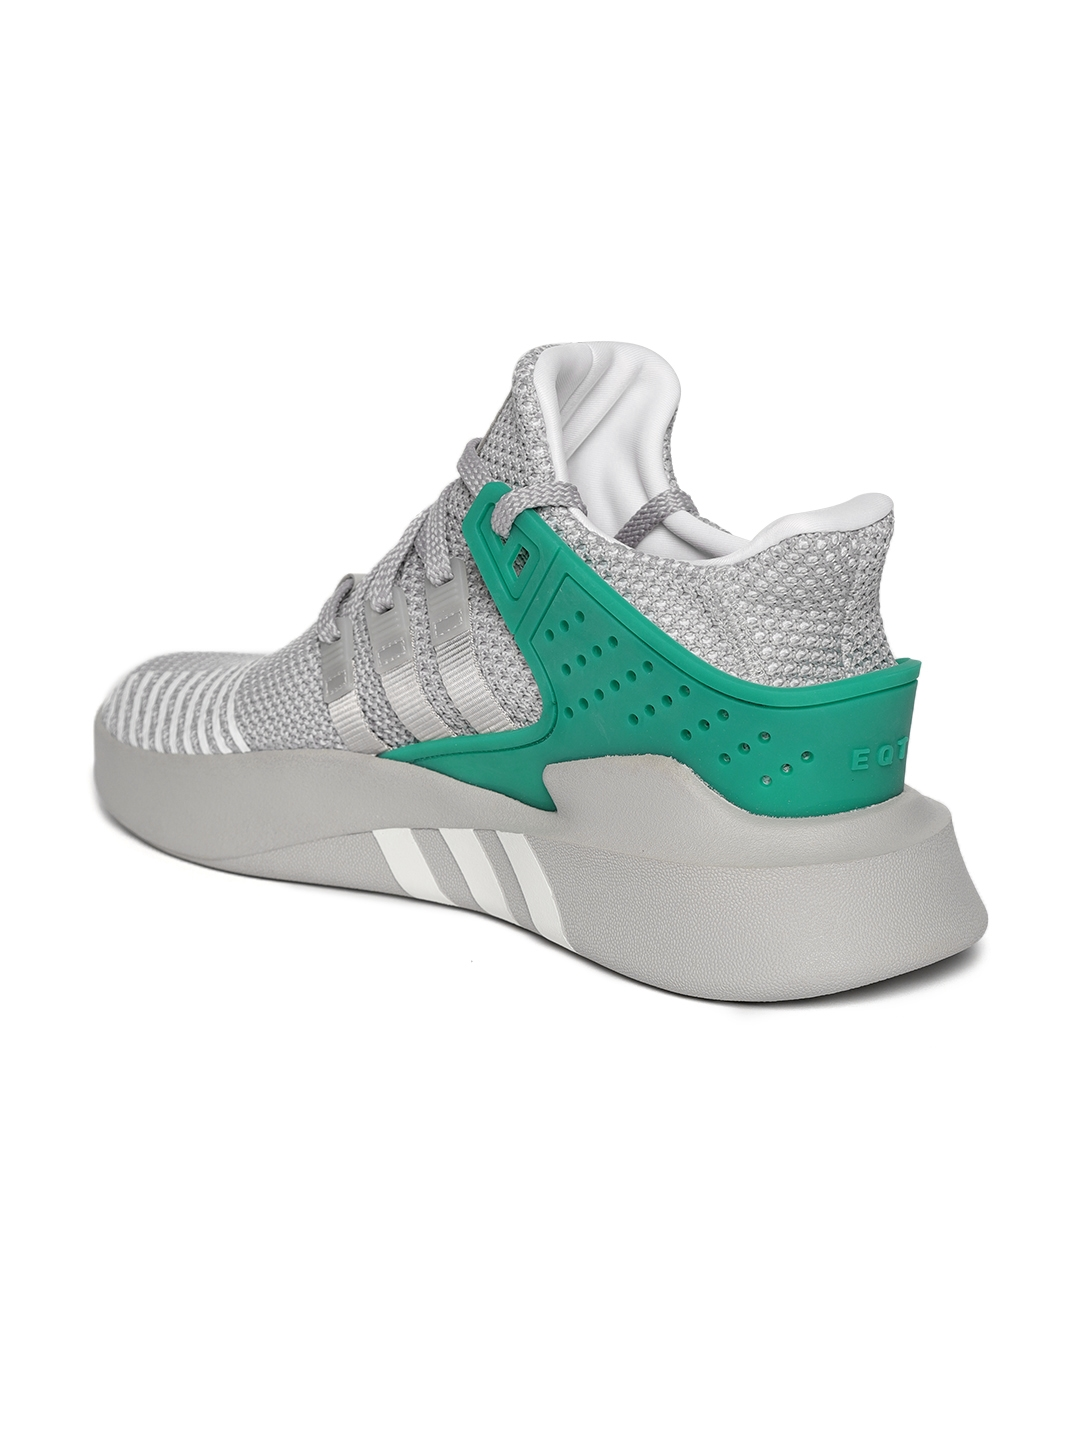 9e96213d03c8 Buy ADIDAS Originals Men Grey EQT BASK ADV Sneakers - Casual Shoes ...